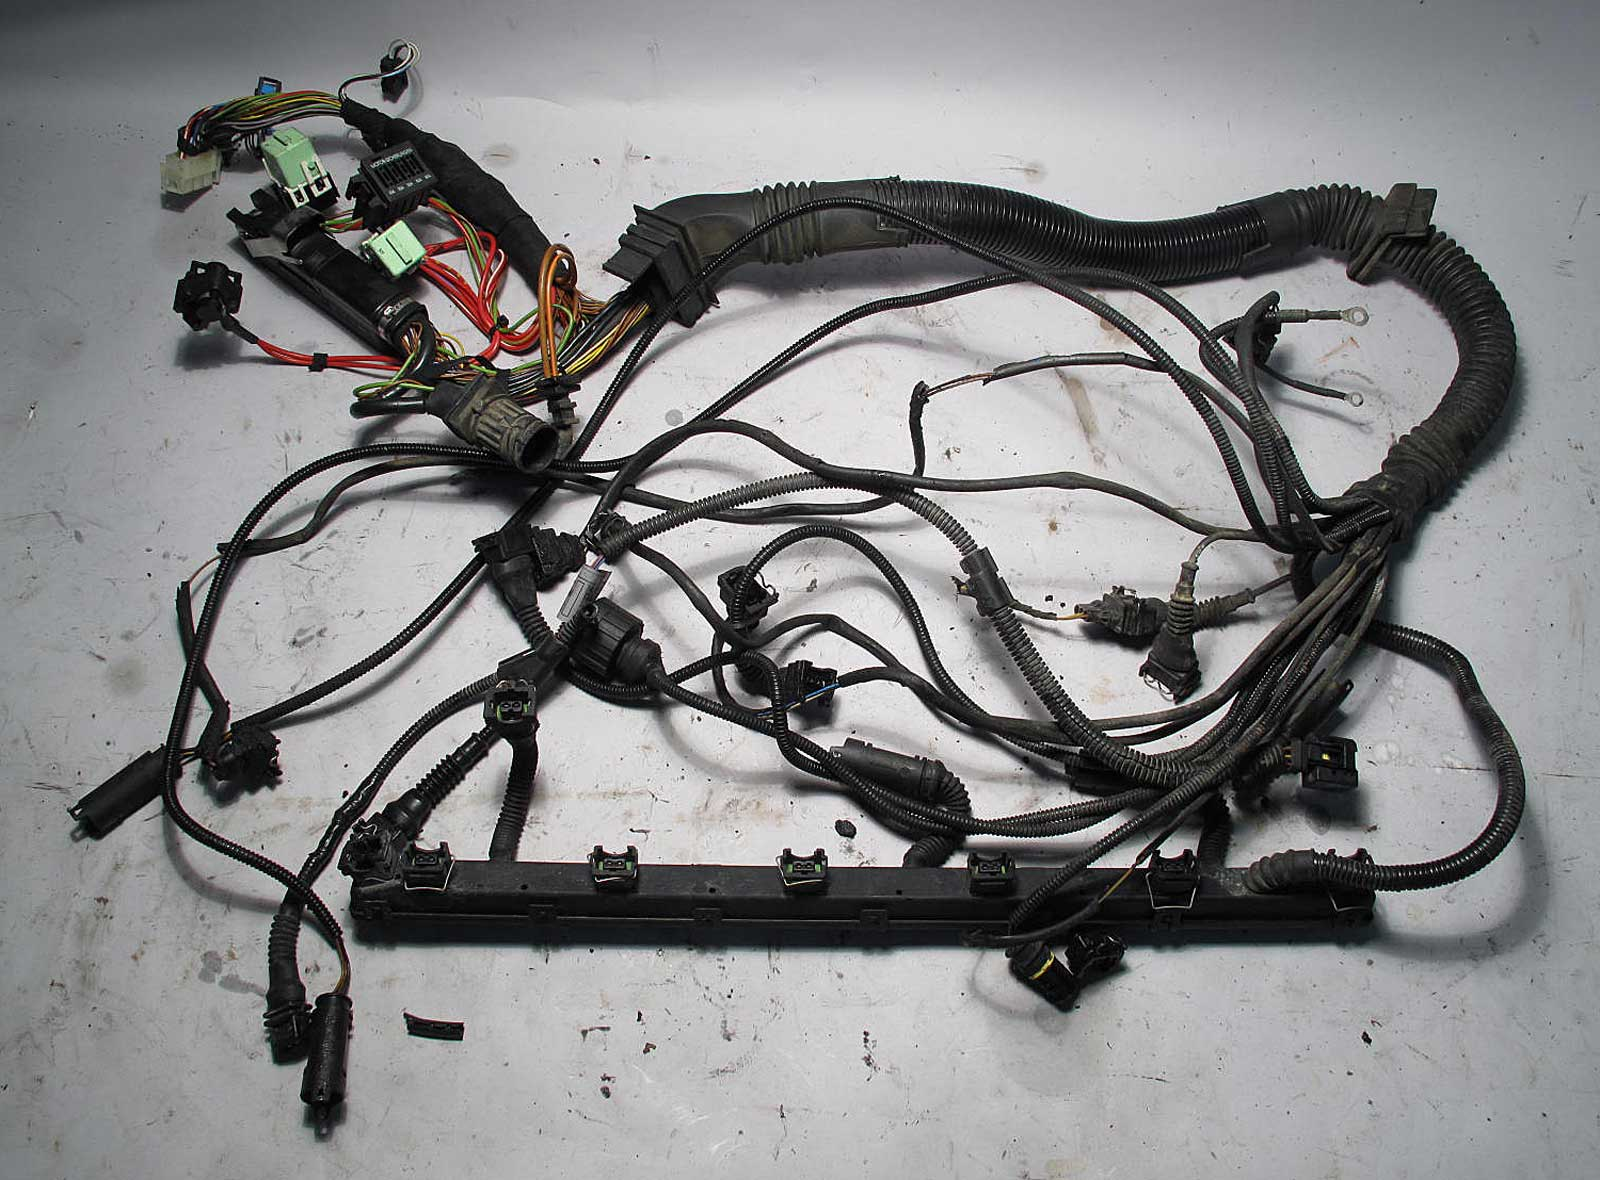 86 toyota pickup engine harness free download wiring diagram engine harness